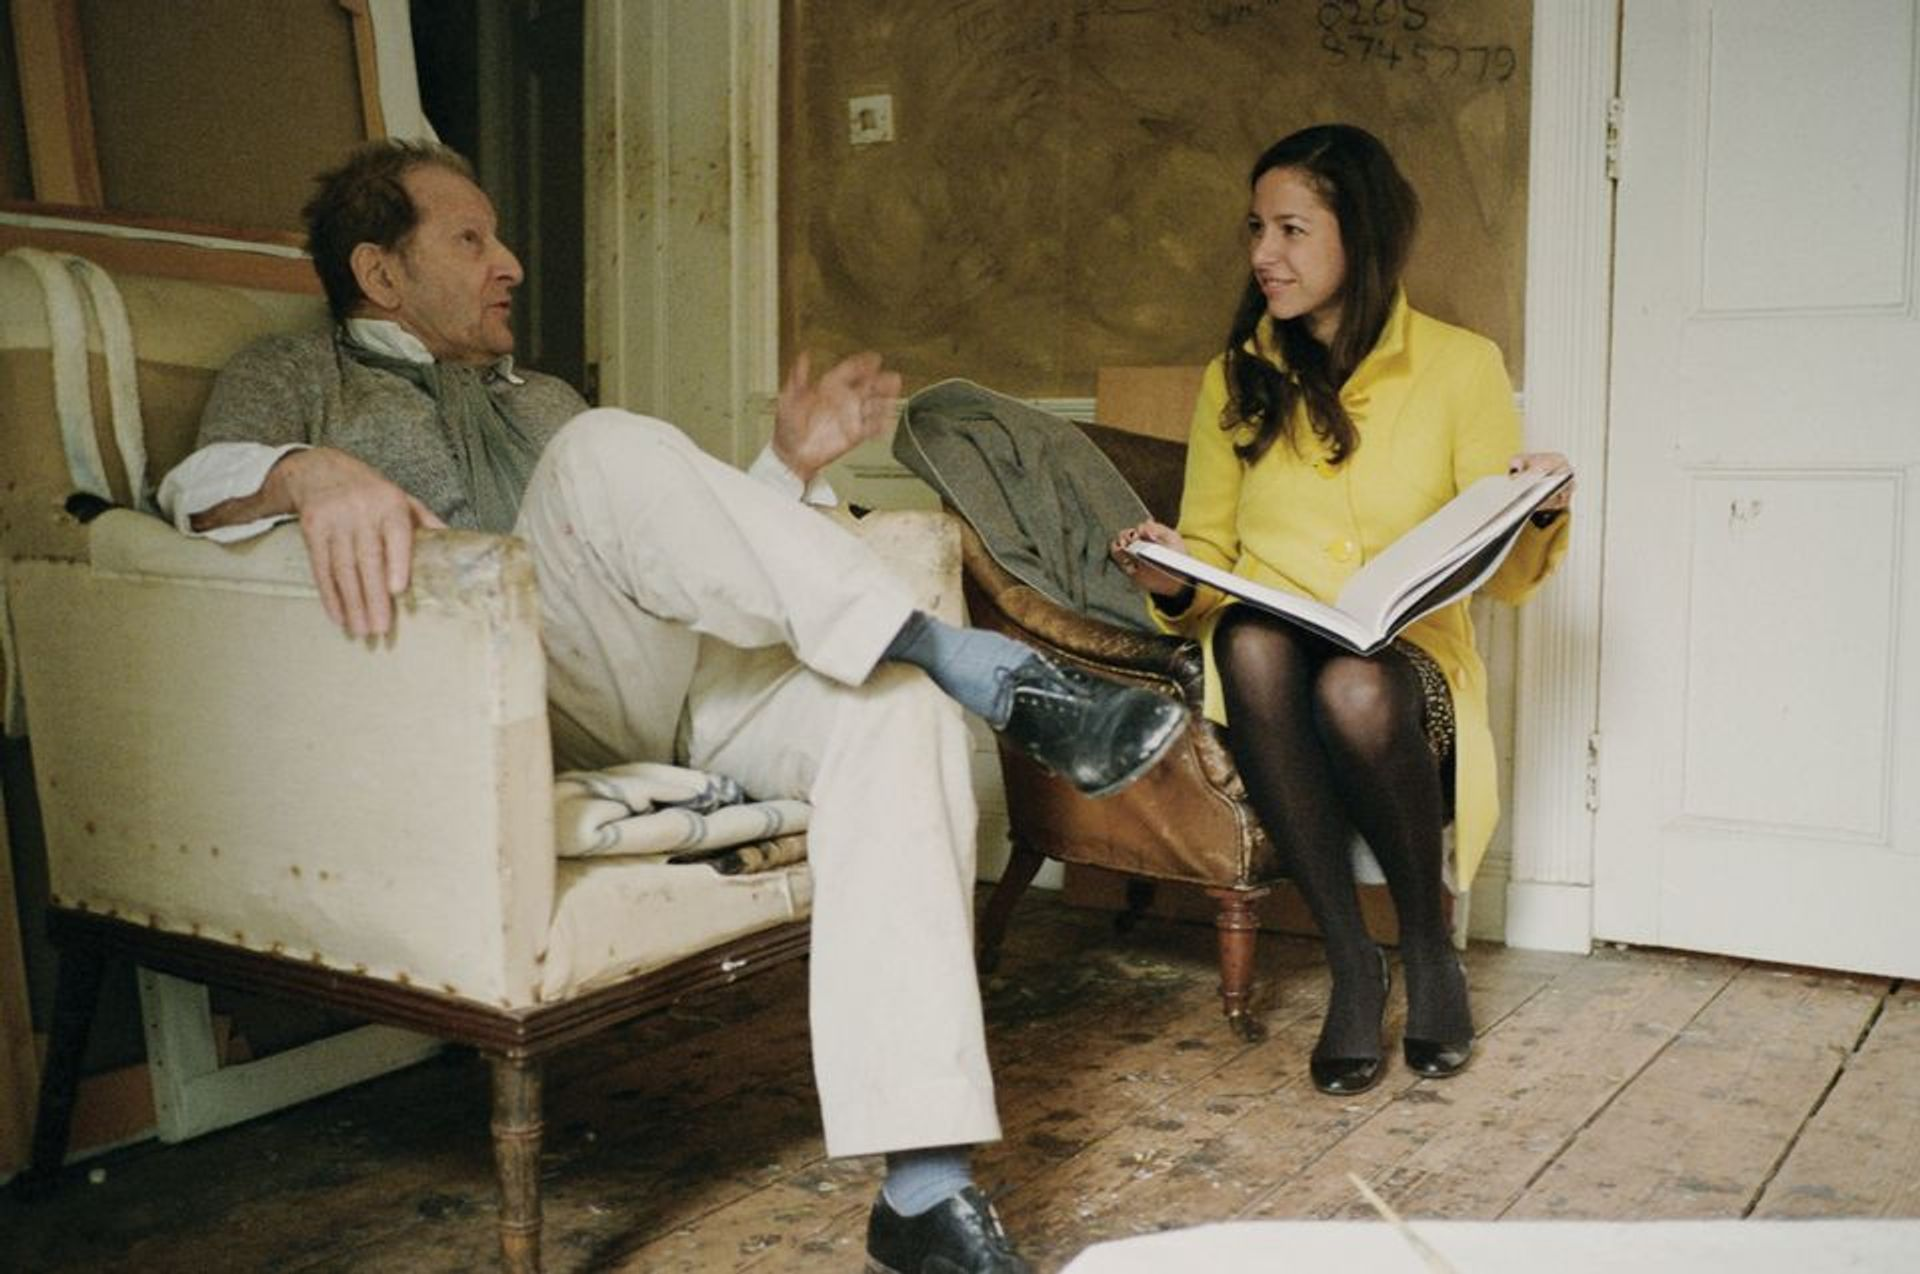 Pilar Ordovas brought Lucian Freud's 1995 Benefits Supervisor Sleeping to auction in 2008 (she is pictured with the artist, below); the portrait sold for a record price in Christie's New York salerooms © David Dawson